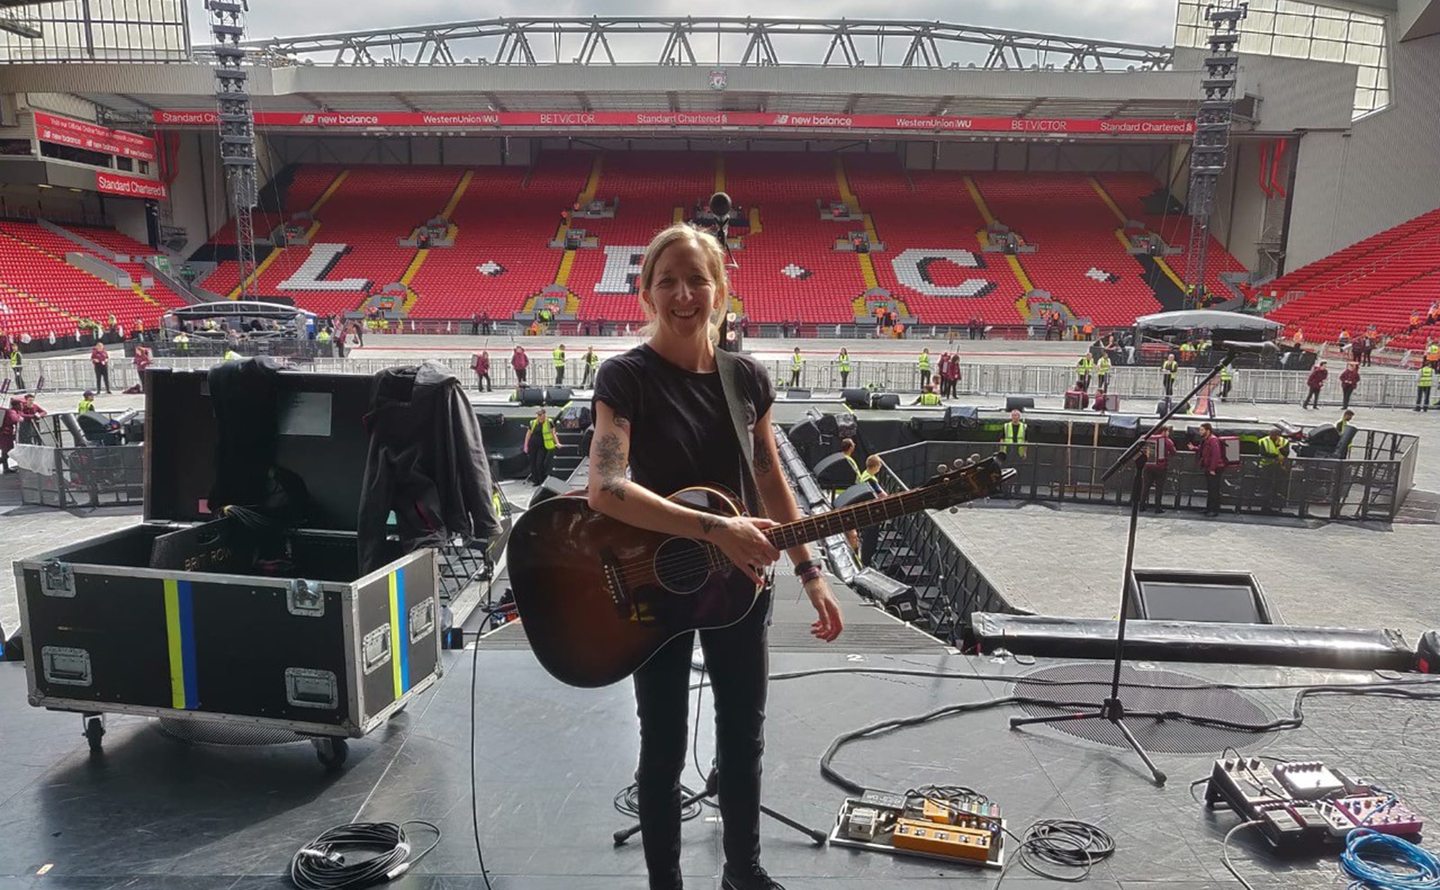 Claire Murphy at Anfield